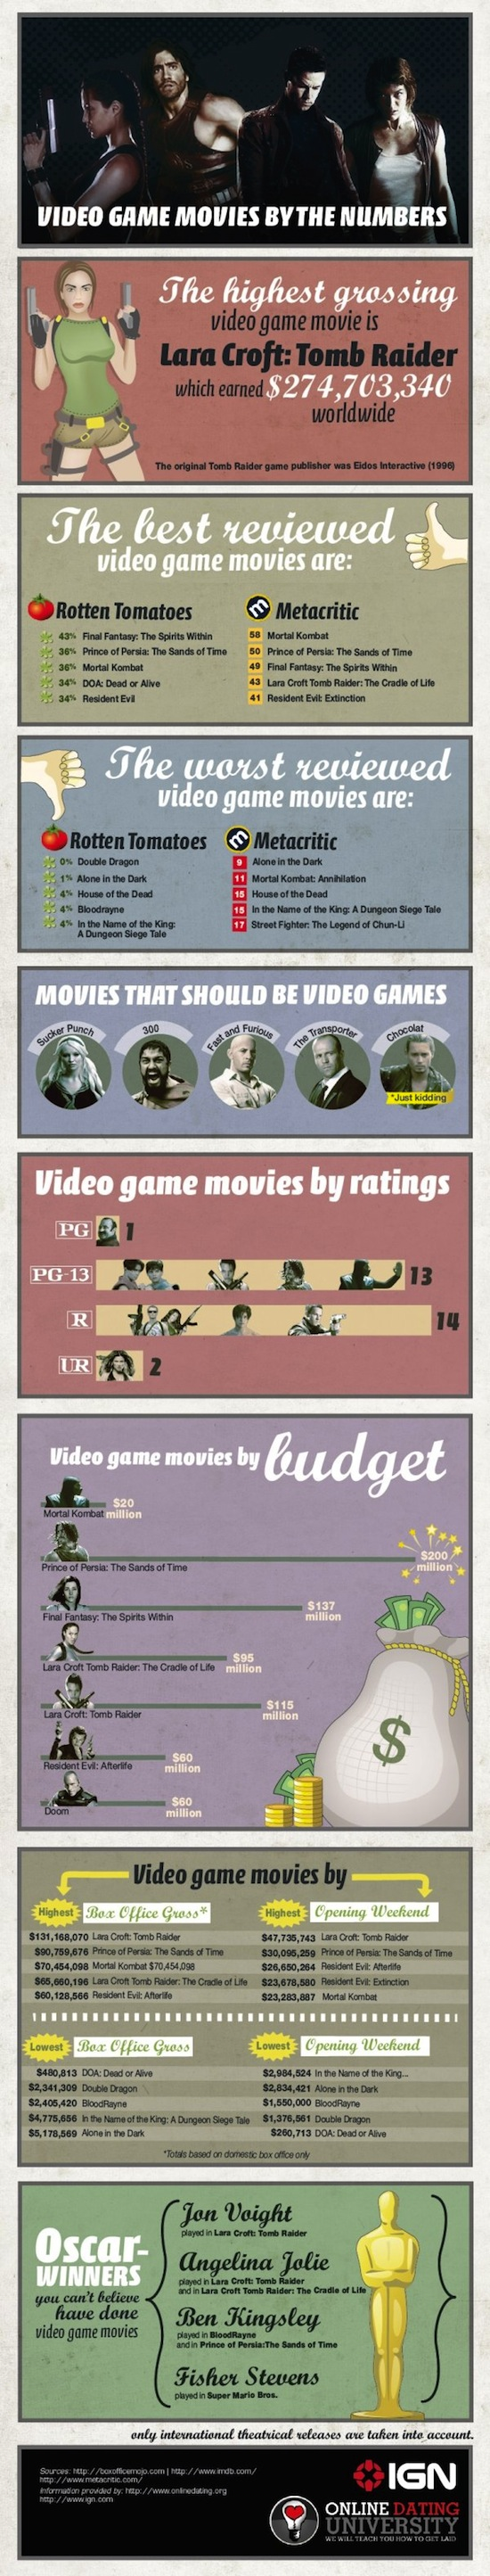 Videojuegos de Película [Infografía] - Video-Game-Movies-Post